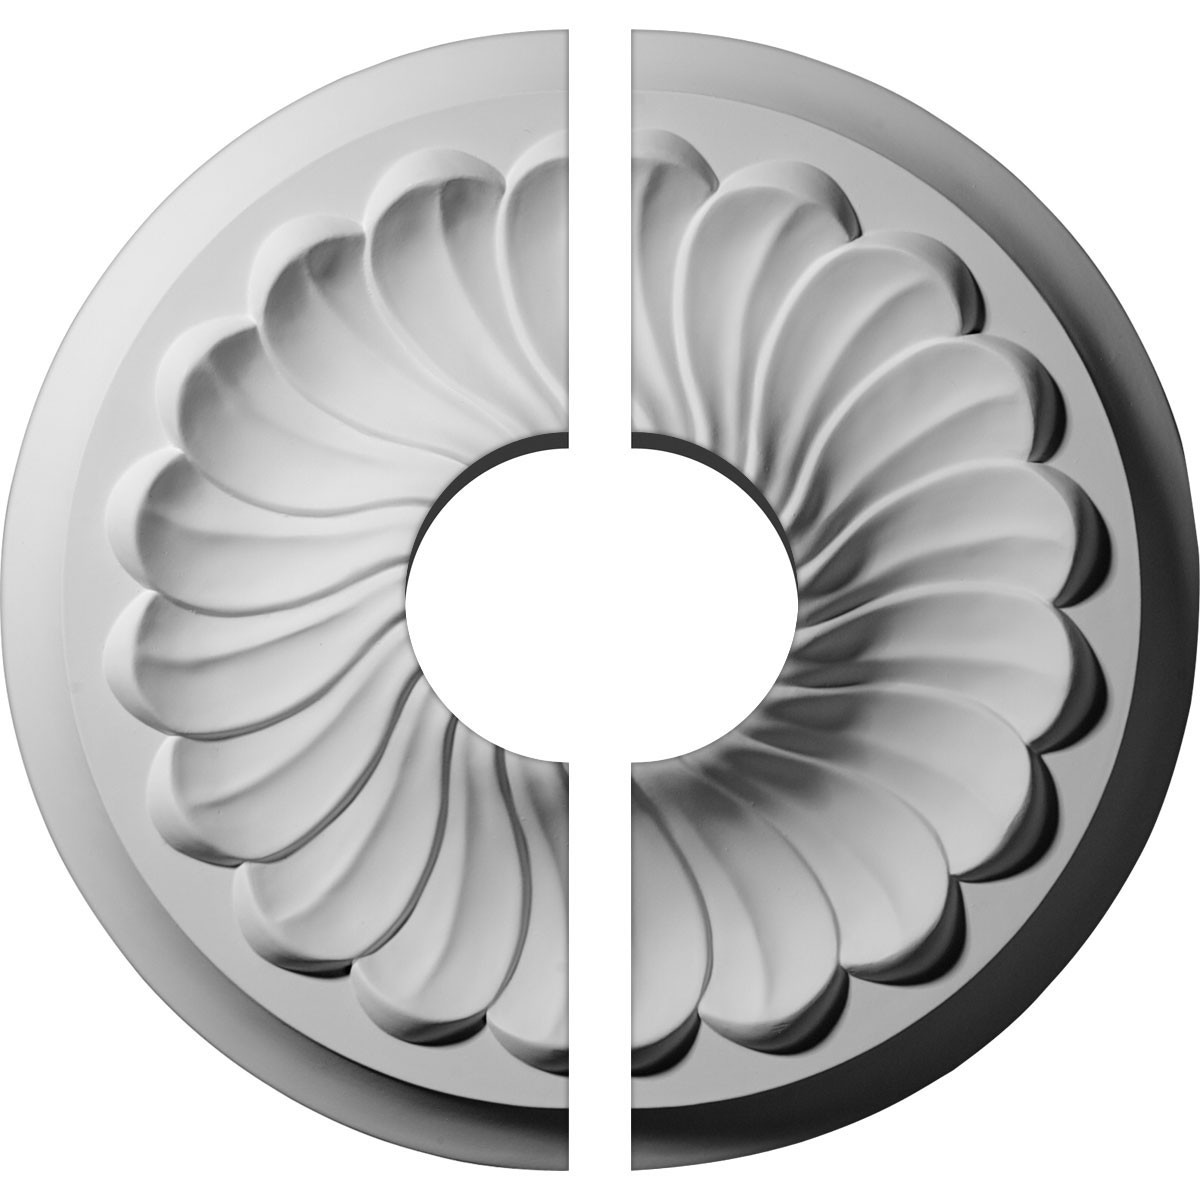 """EM-CM12FL2-03500 - 12 1/4""""OD x 3 1/2""""ID x 2 1/4""""P Flower Spiral Ceiling Medallion, Two Piece (Fits Canopies up to 3 1/2"""")"""